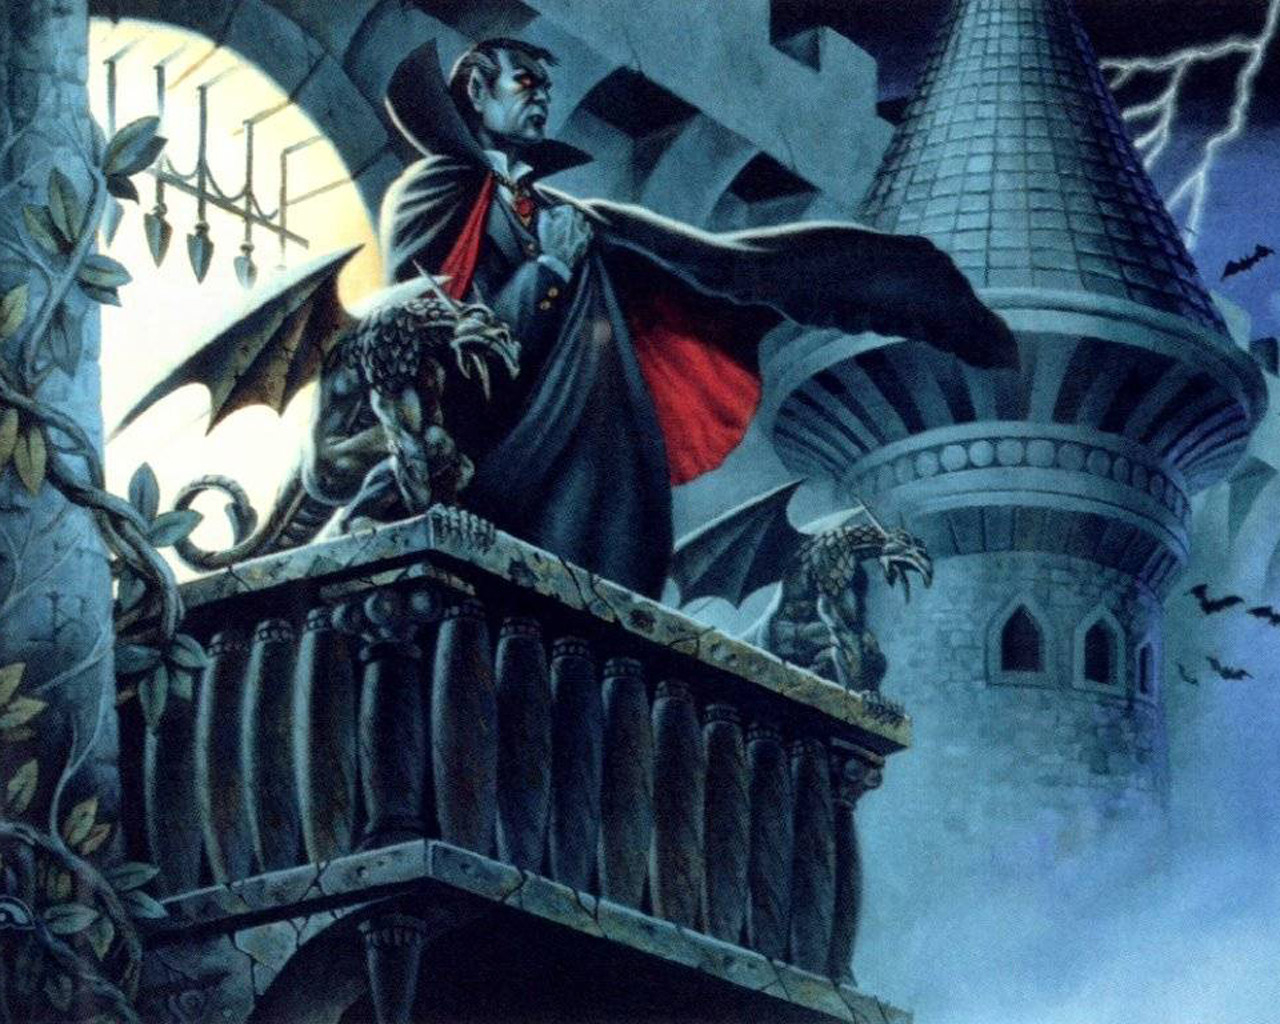 Games - Like a Boss - Count Strahd von Zarovich